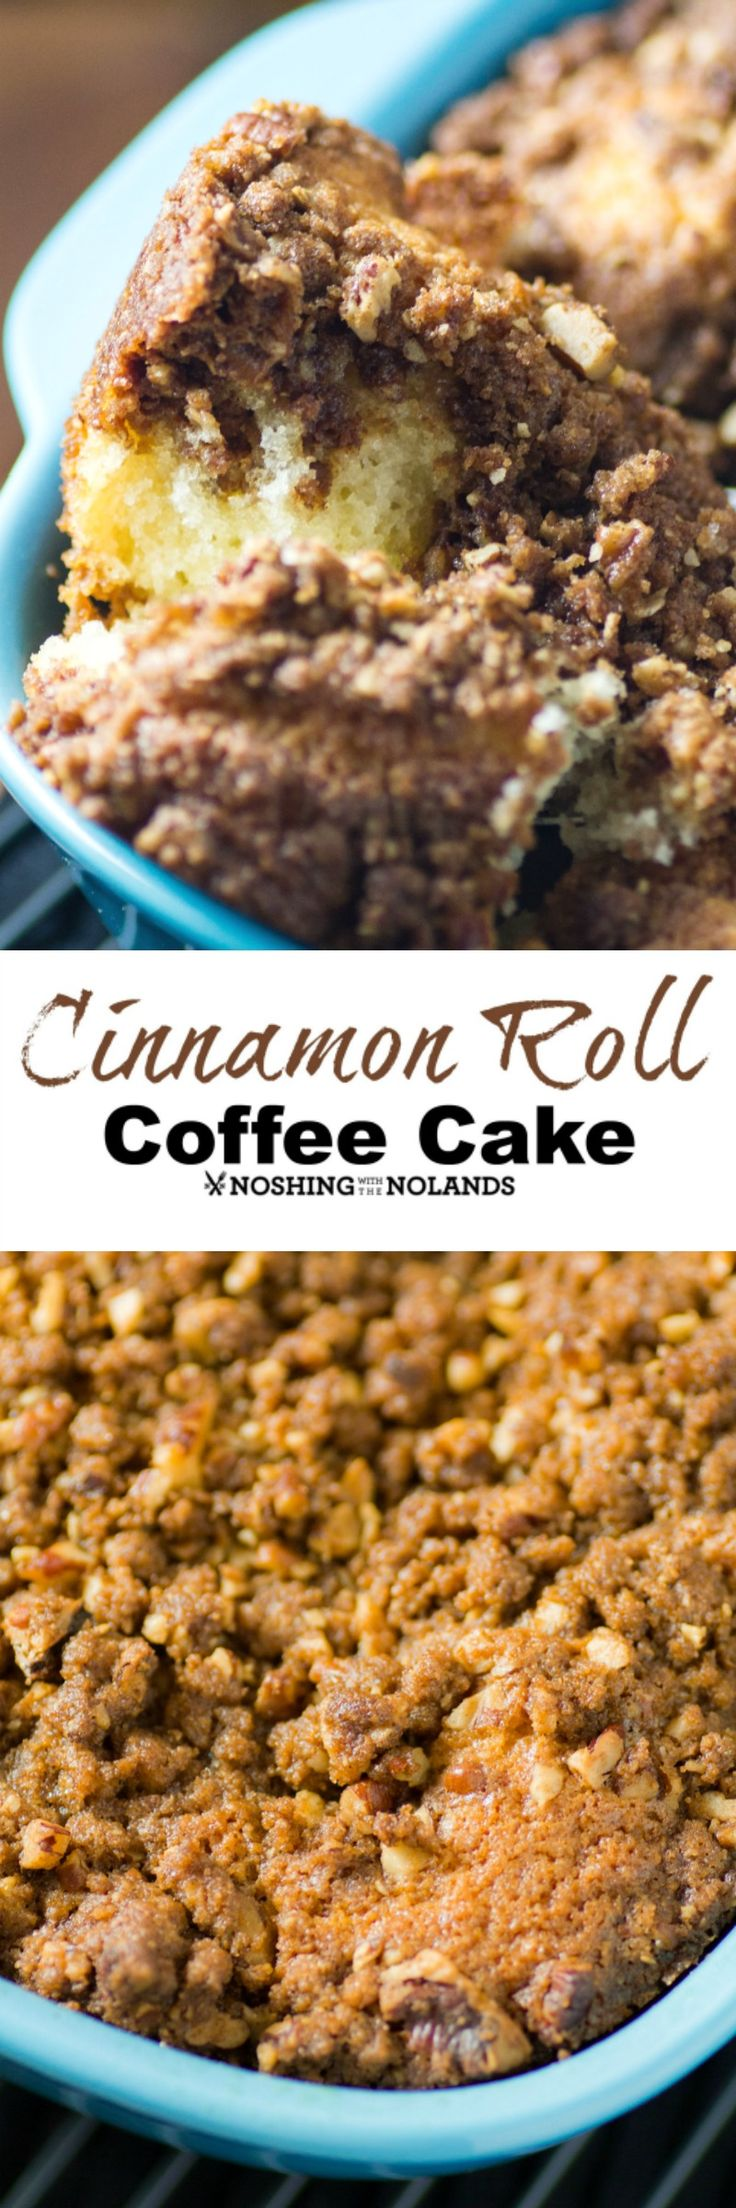 Cinnamon Roll Coffee Cake by Noshing With The Nolands is so moist and delicious with a crunchy streusel topping. Try serving this warm from the oven any time of day.